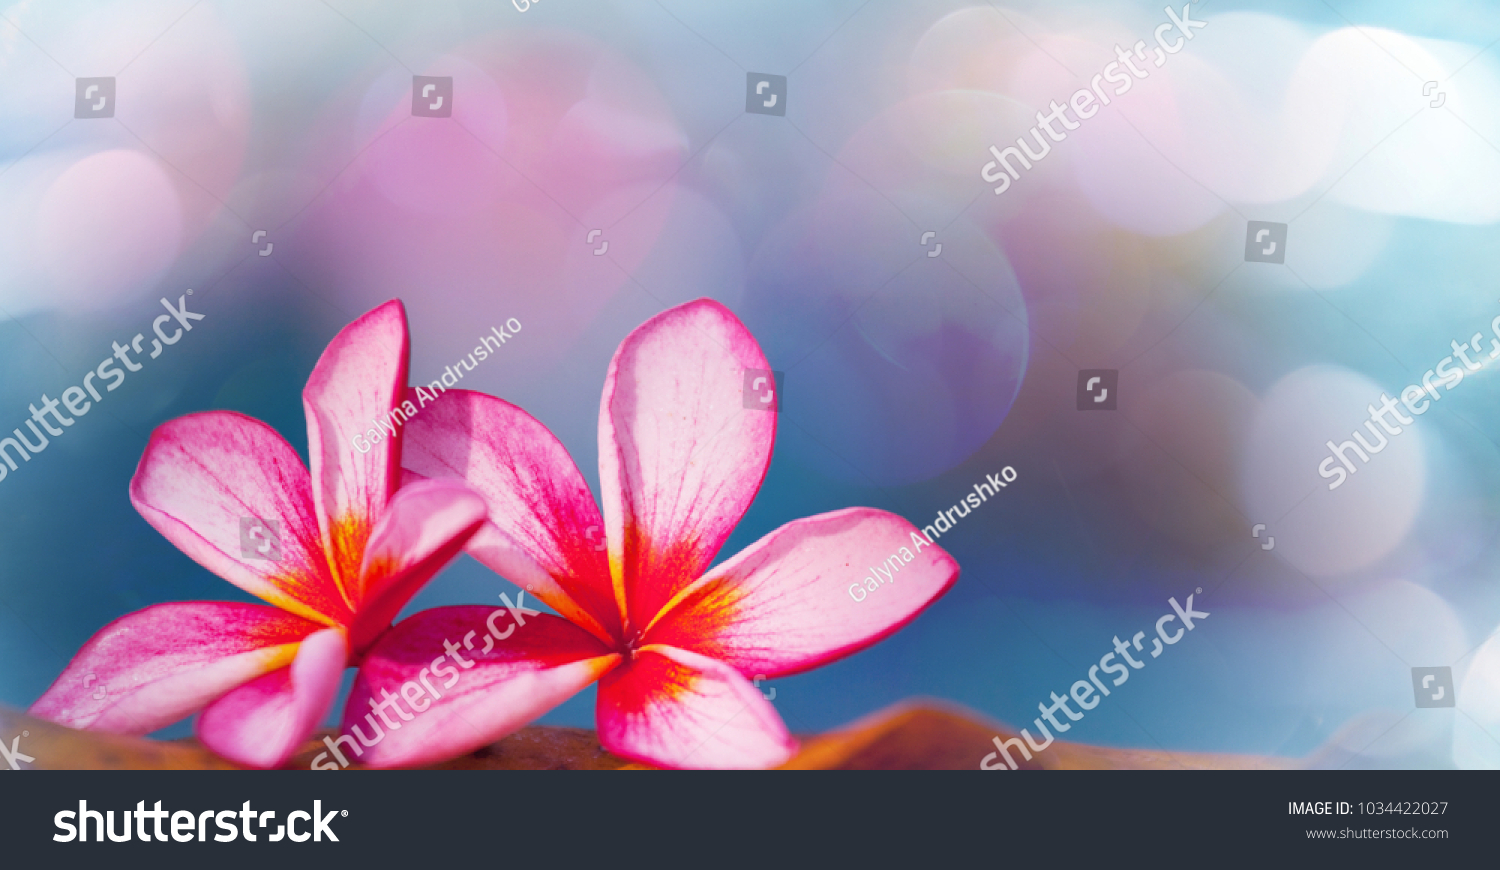 Tropical flowers hawaiian garden stock photo 1034422027 shutterstock tropical flowers in hawaiian garden izmirmasajfo Gallery